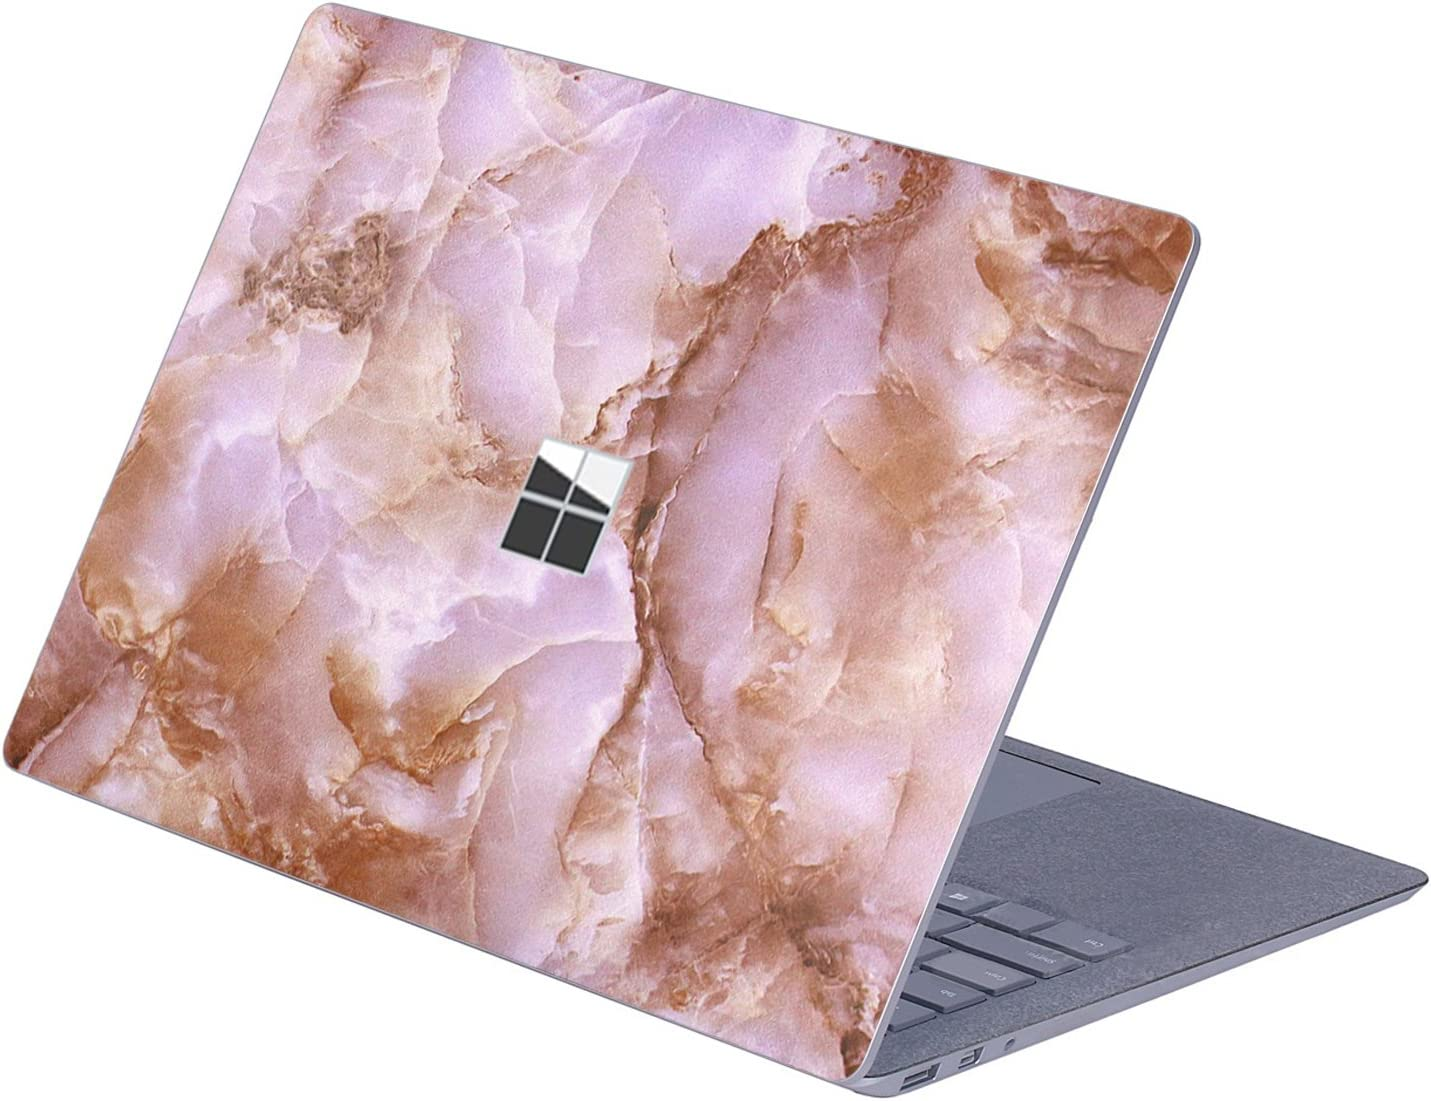 "MasiBloom Top Side Laptop Sticker Decal for 13"" 13.5 inch Microsoft Surface Laptop 3 & 2 & 1 (2019/18/17 Released), Not Compatible with Surface Book (Marble- Brown)"